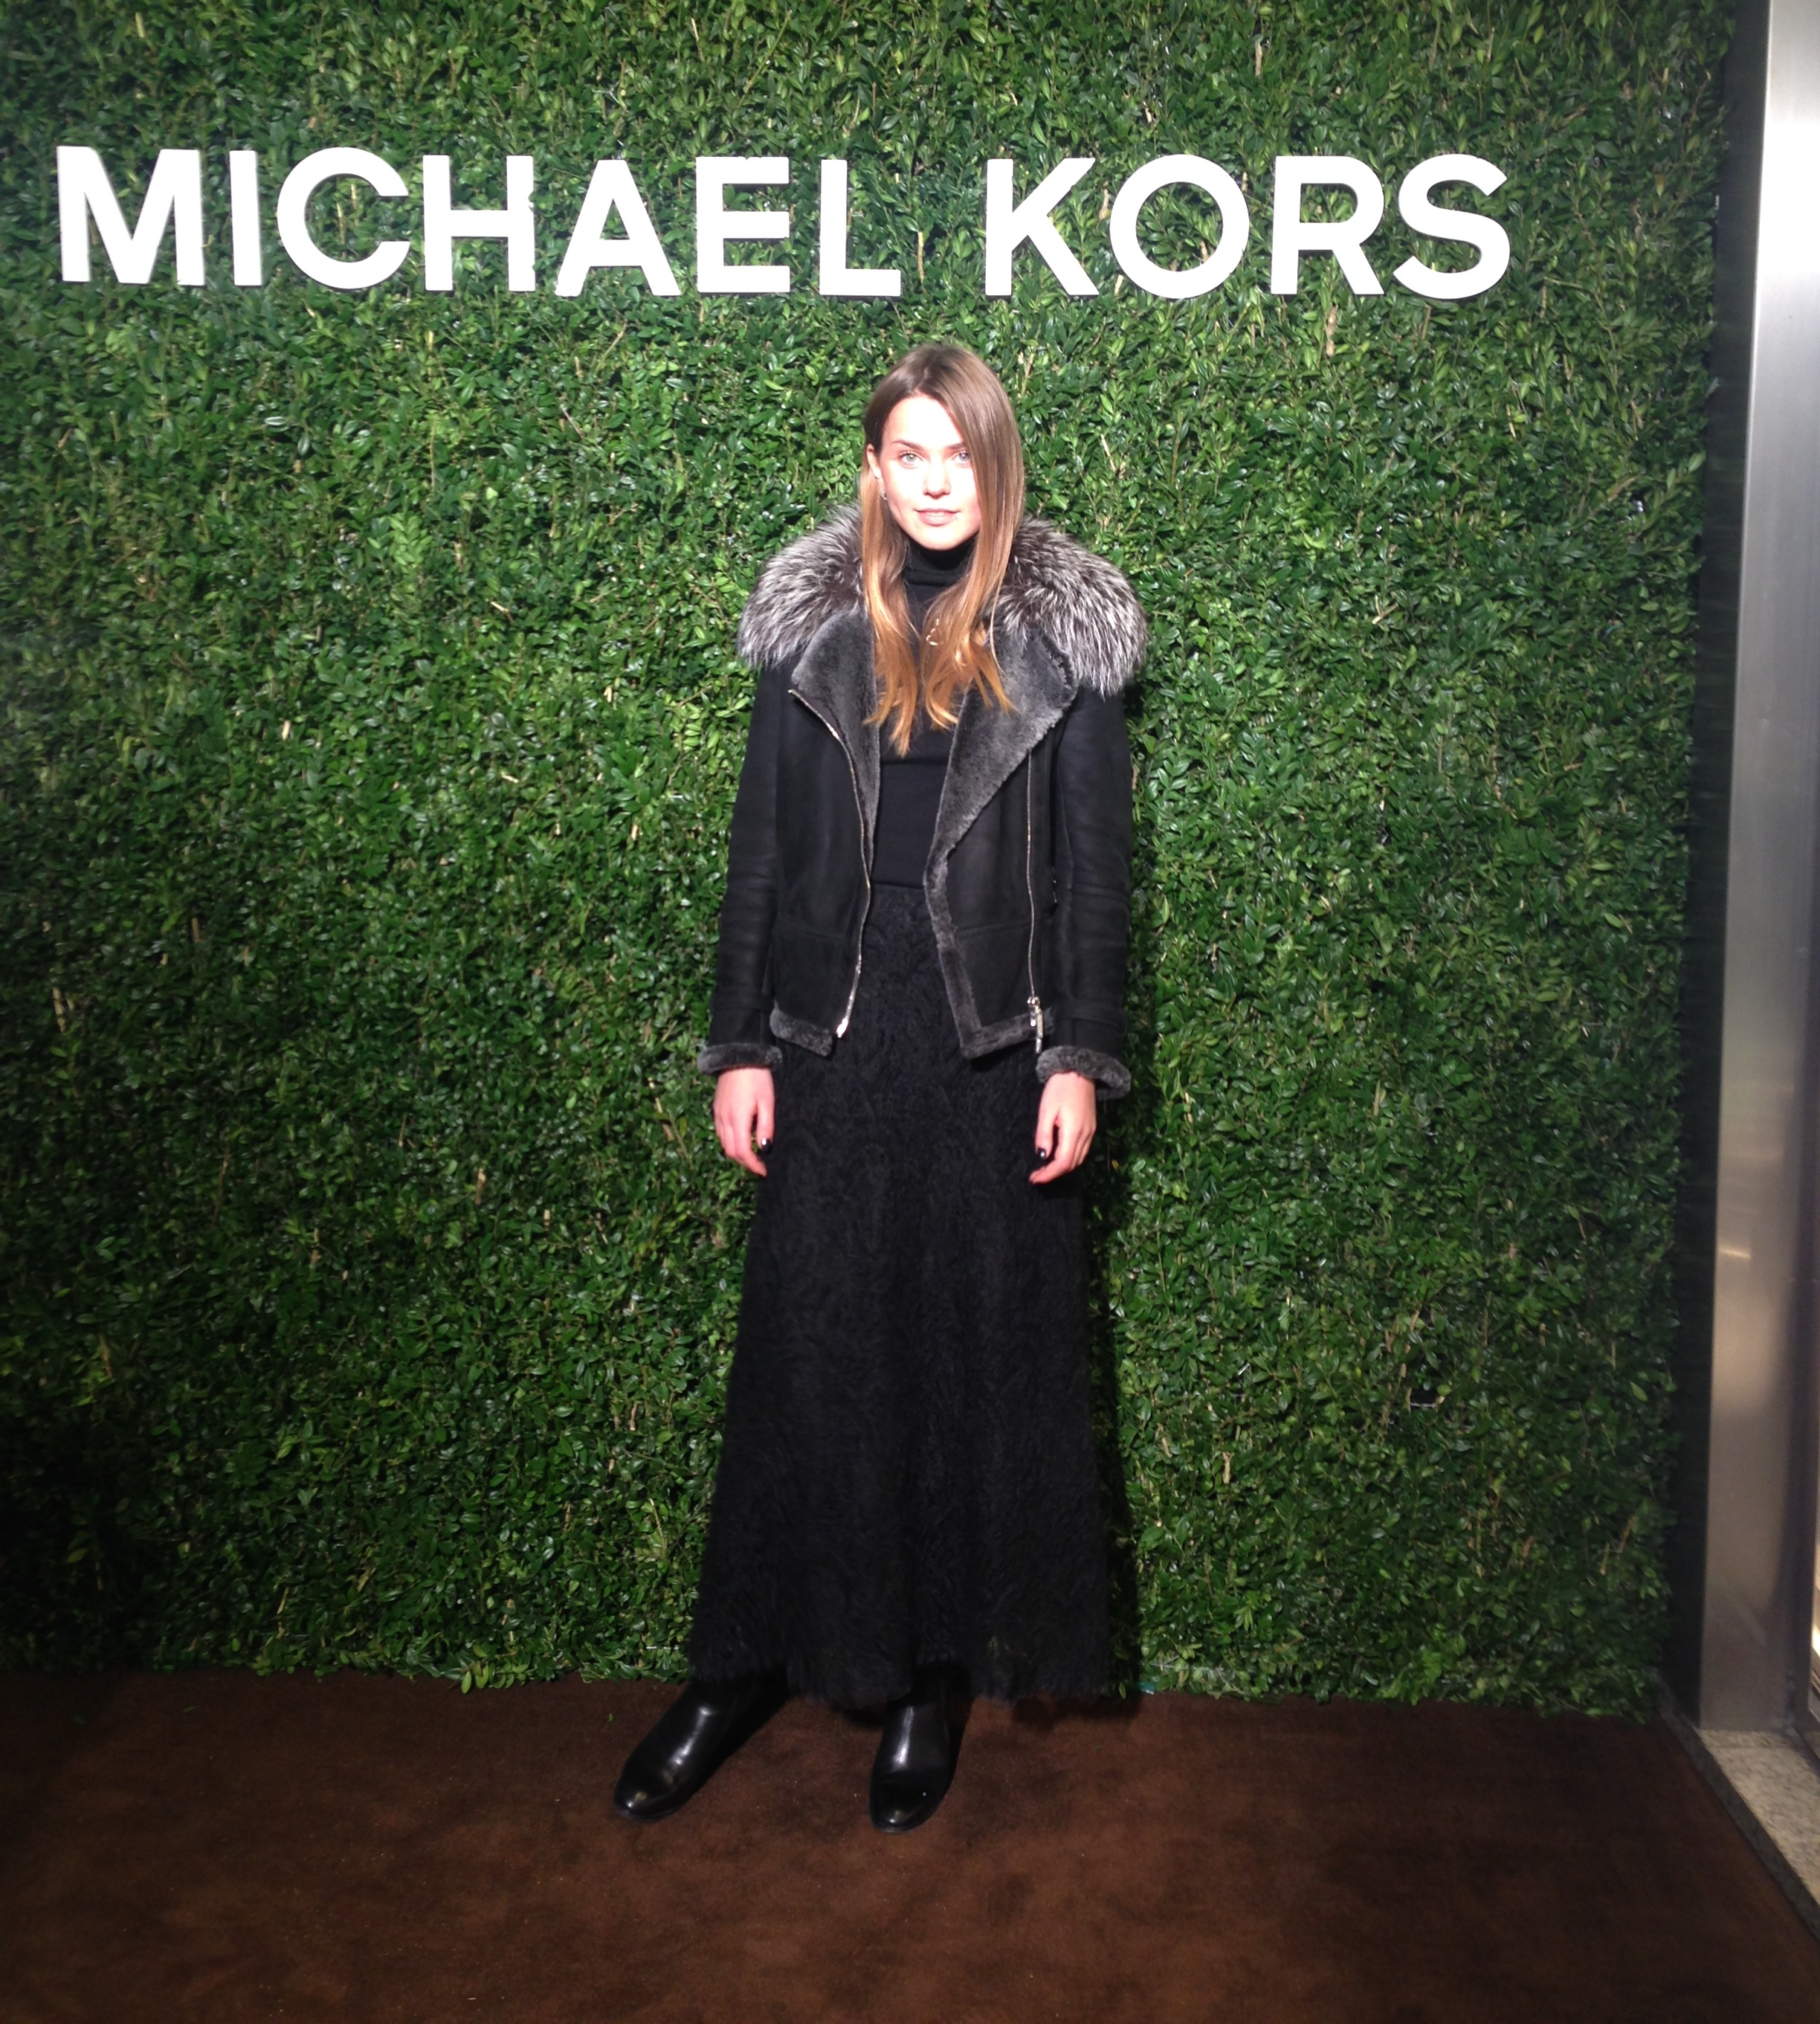 Svetlana shashkova on michael kors event